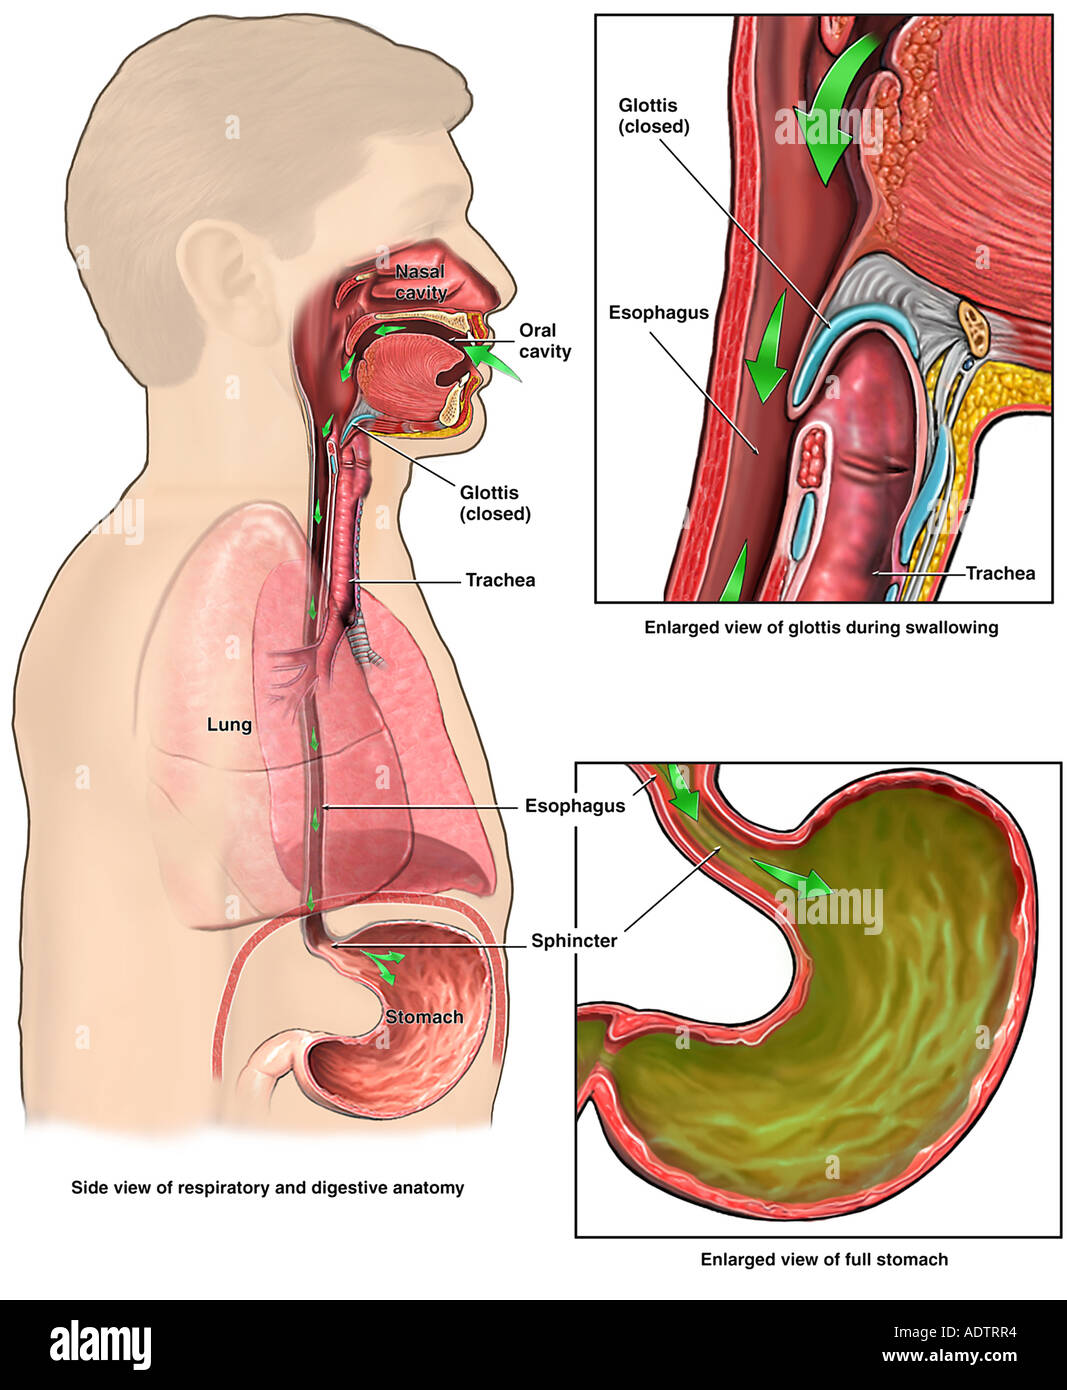 hight resolution of anatomy of the upper digestive system stock image